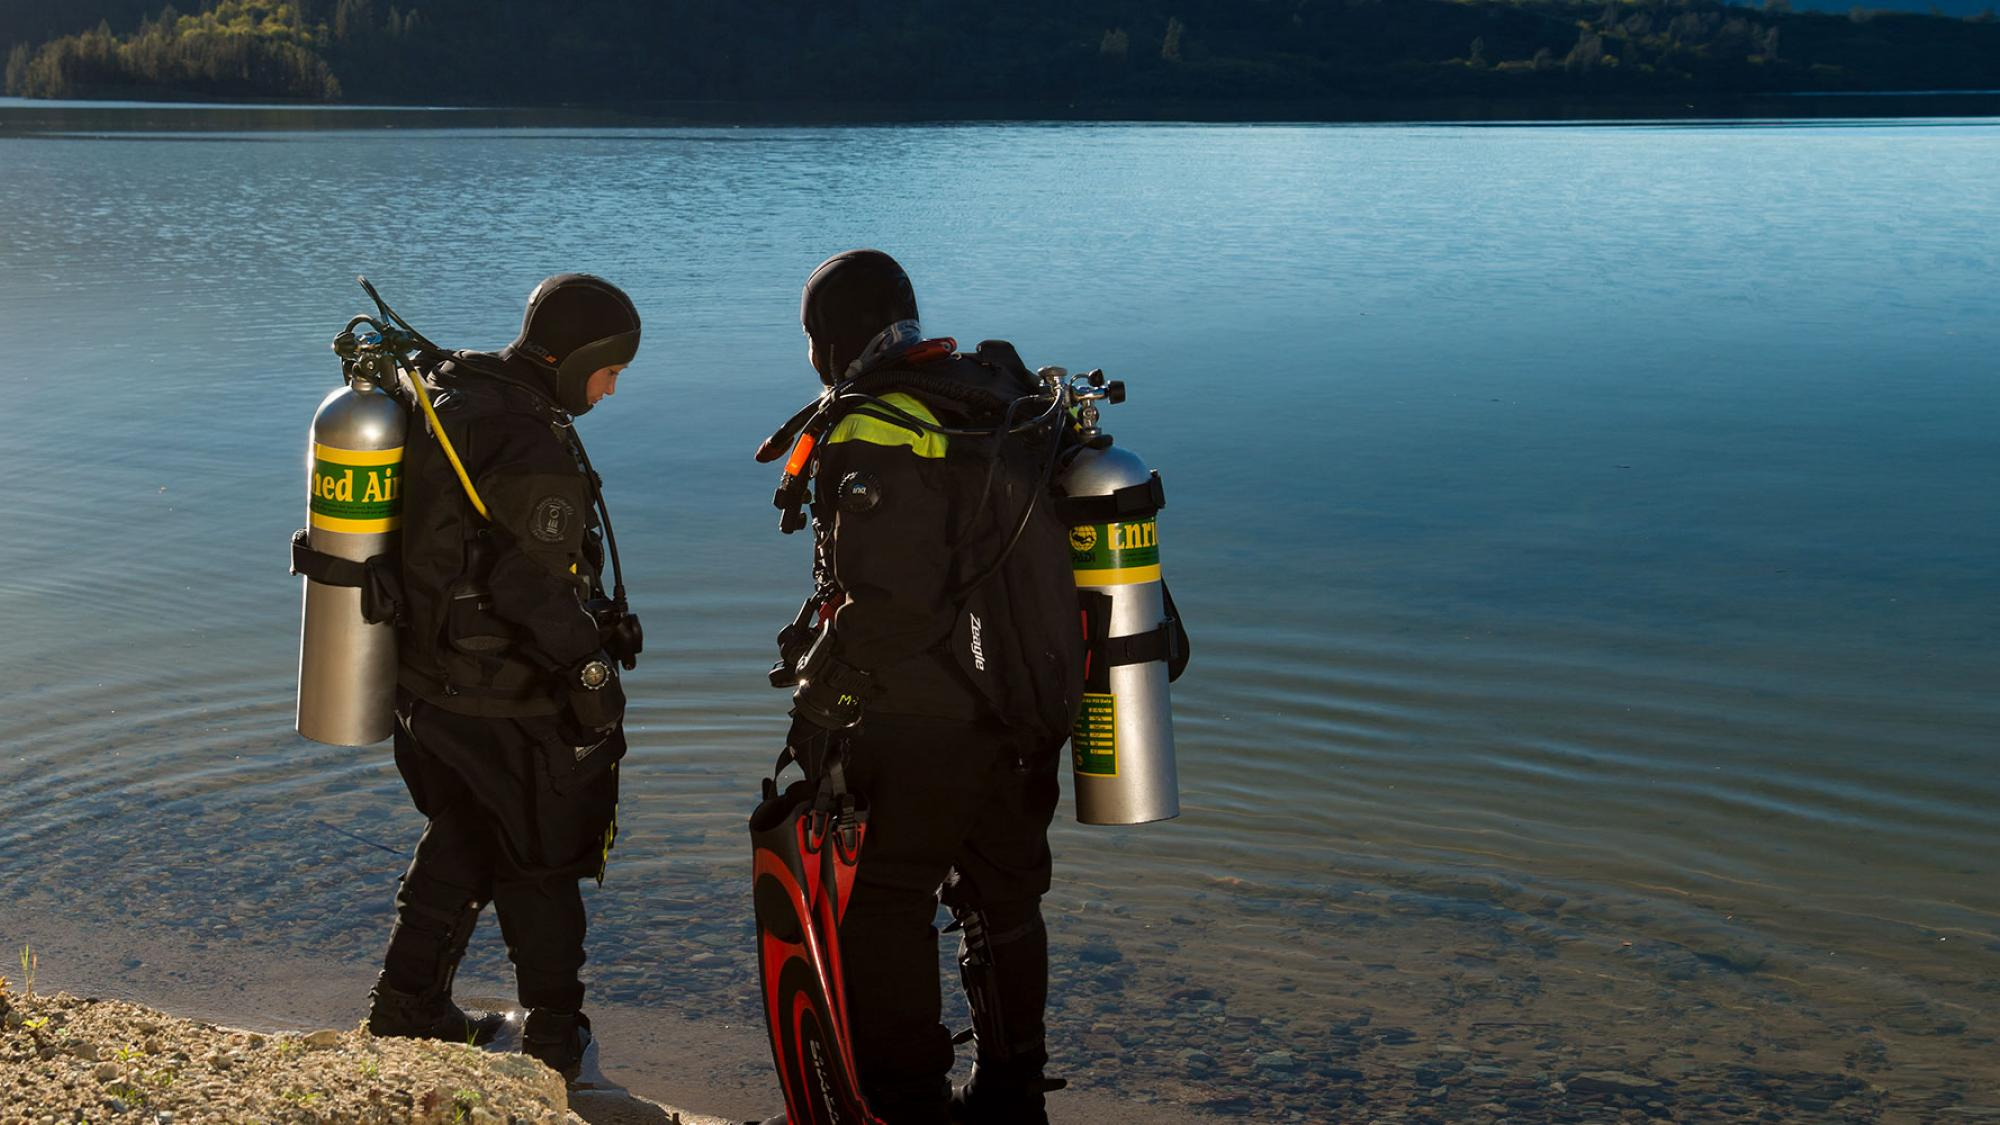 PADI Courses: Enriched Air Diver